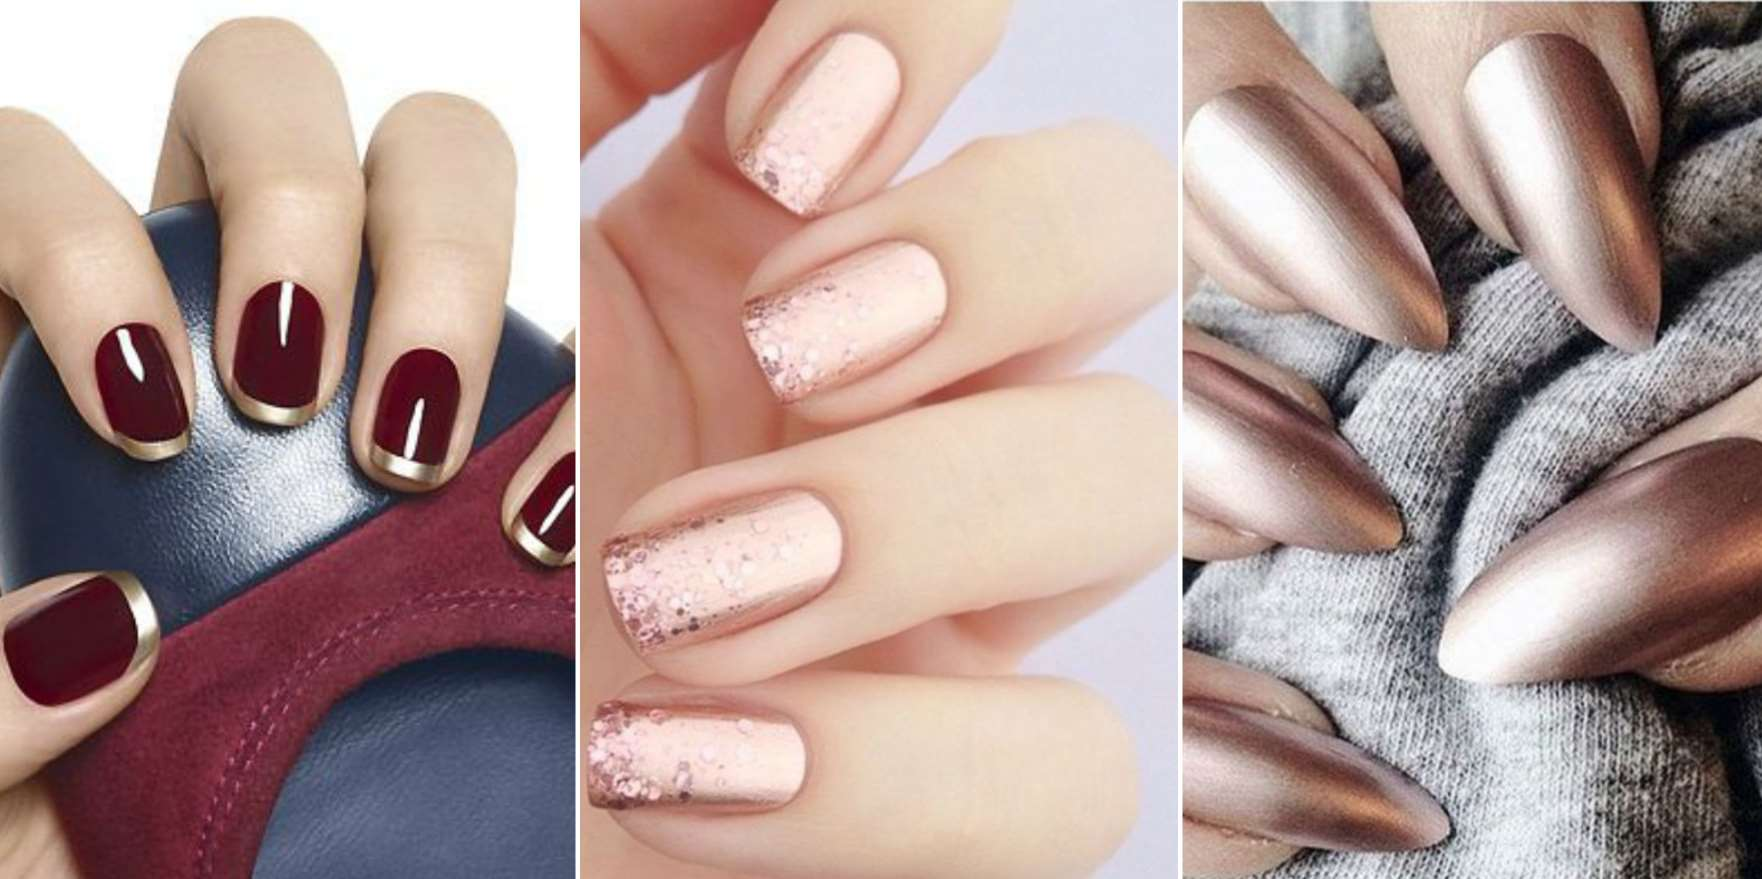 beautiful hands nails